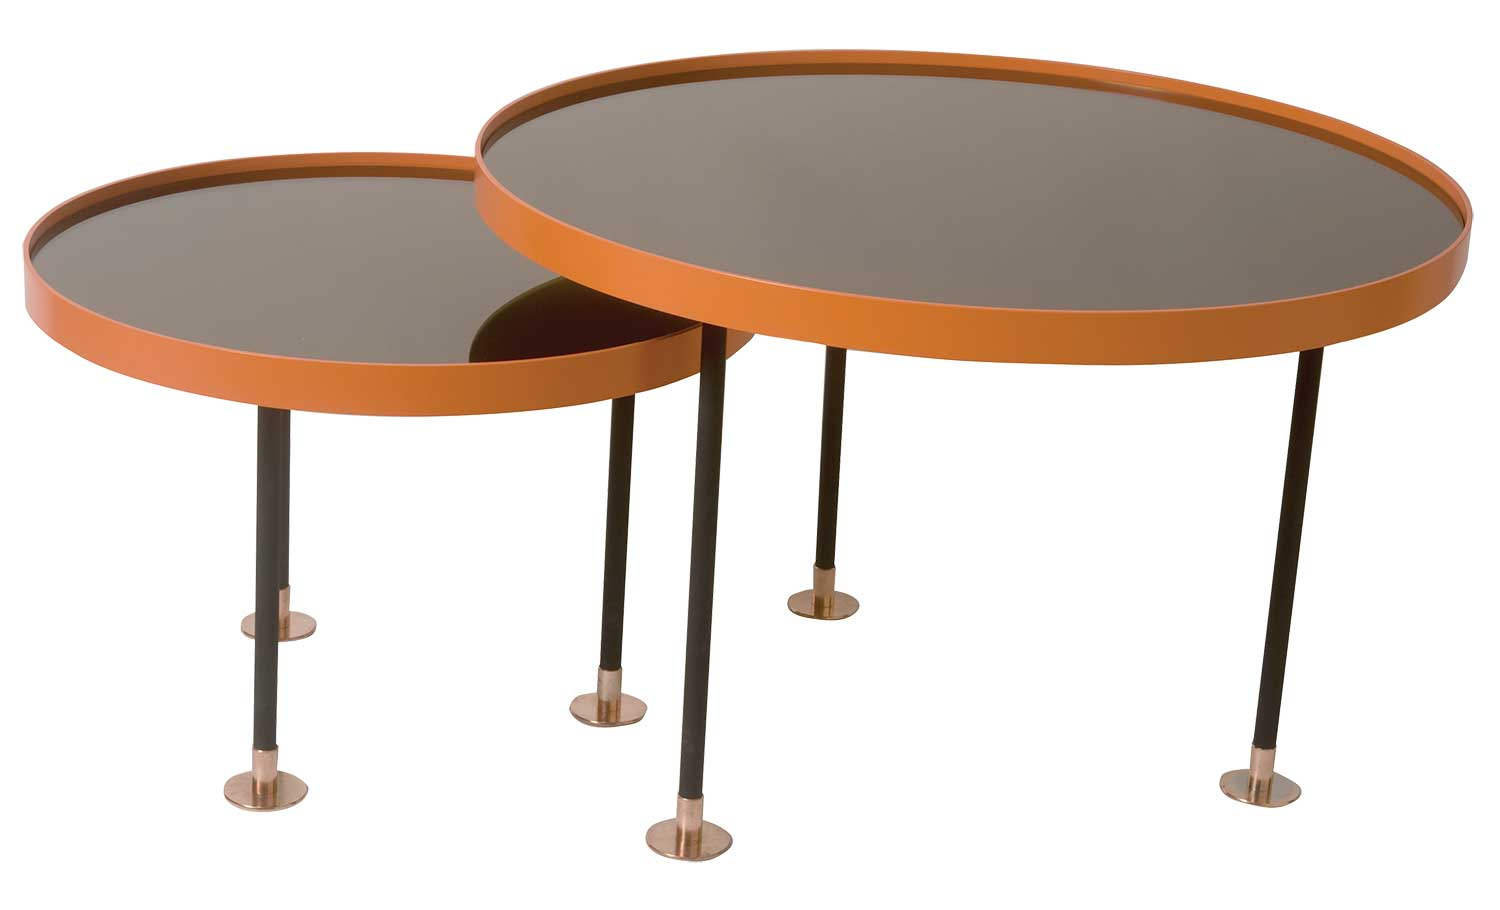 Spegelbord Table by Scherlin, Stockholm Furniture Fair 2014 | Yellowtrace